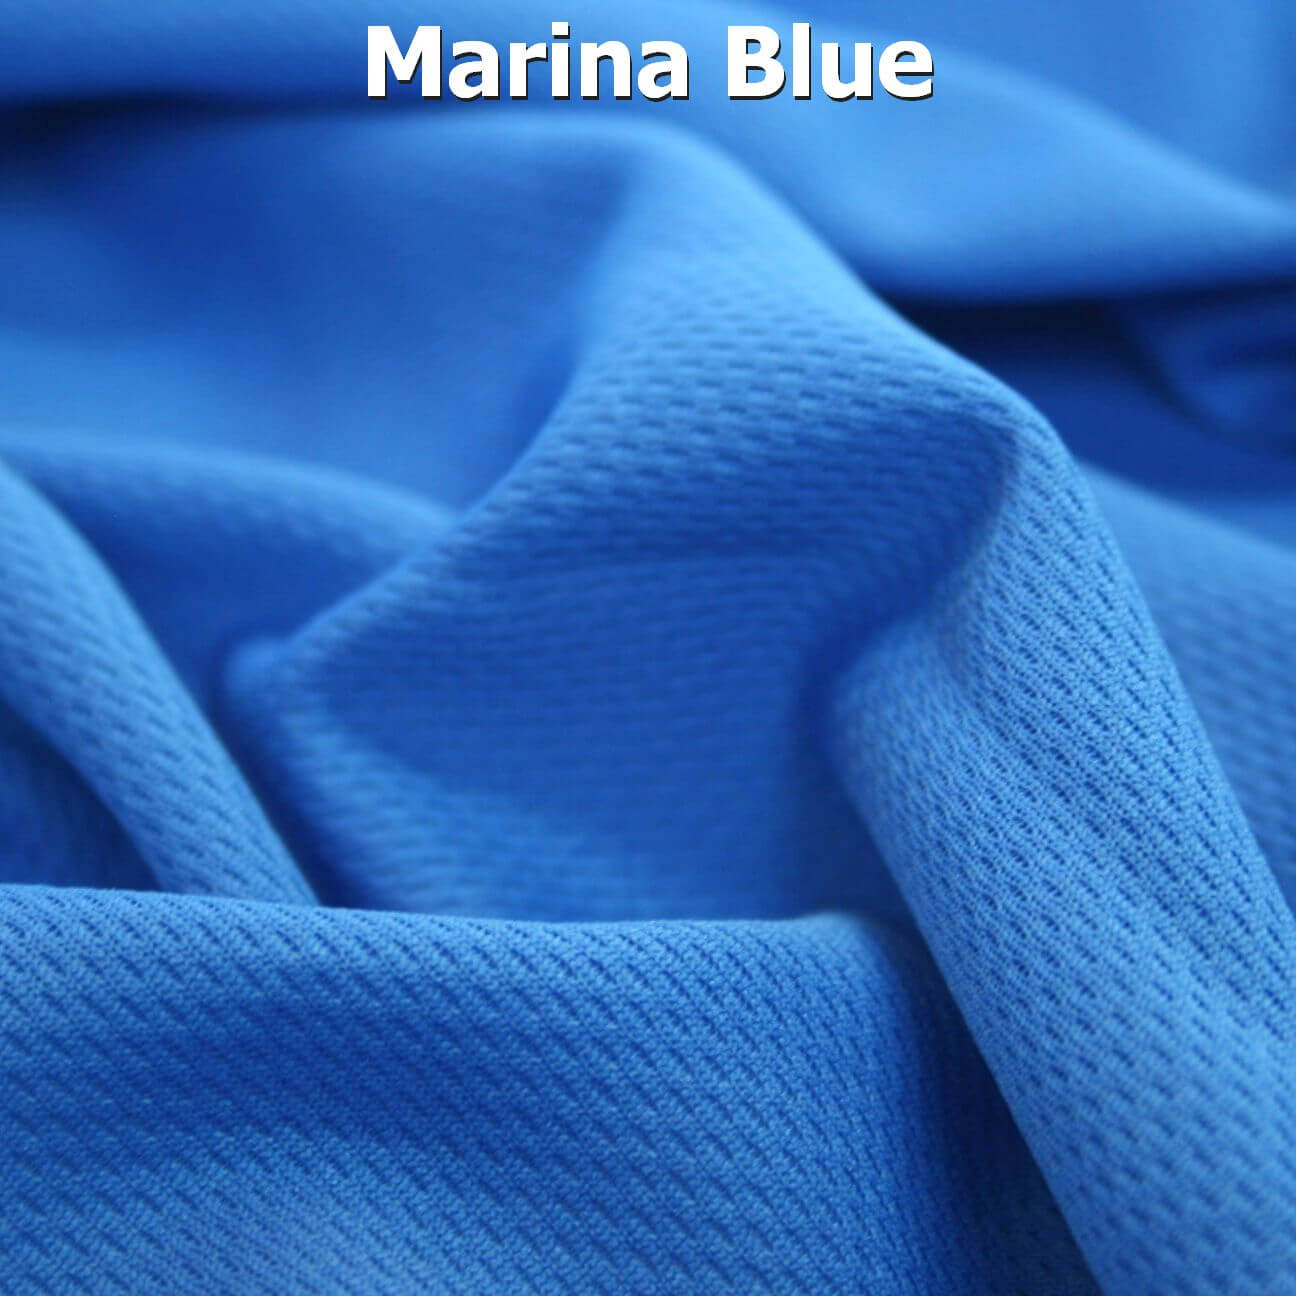 marina blue swatch